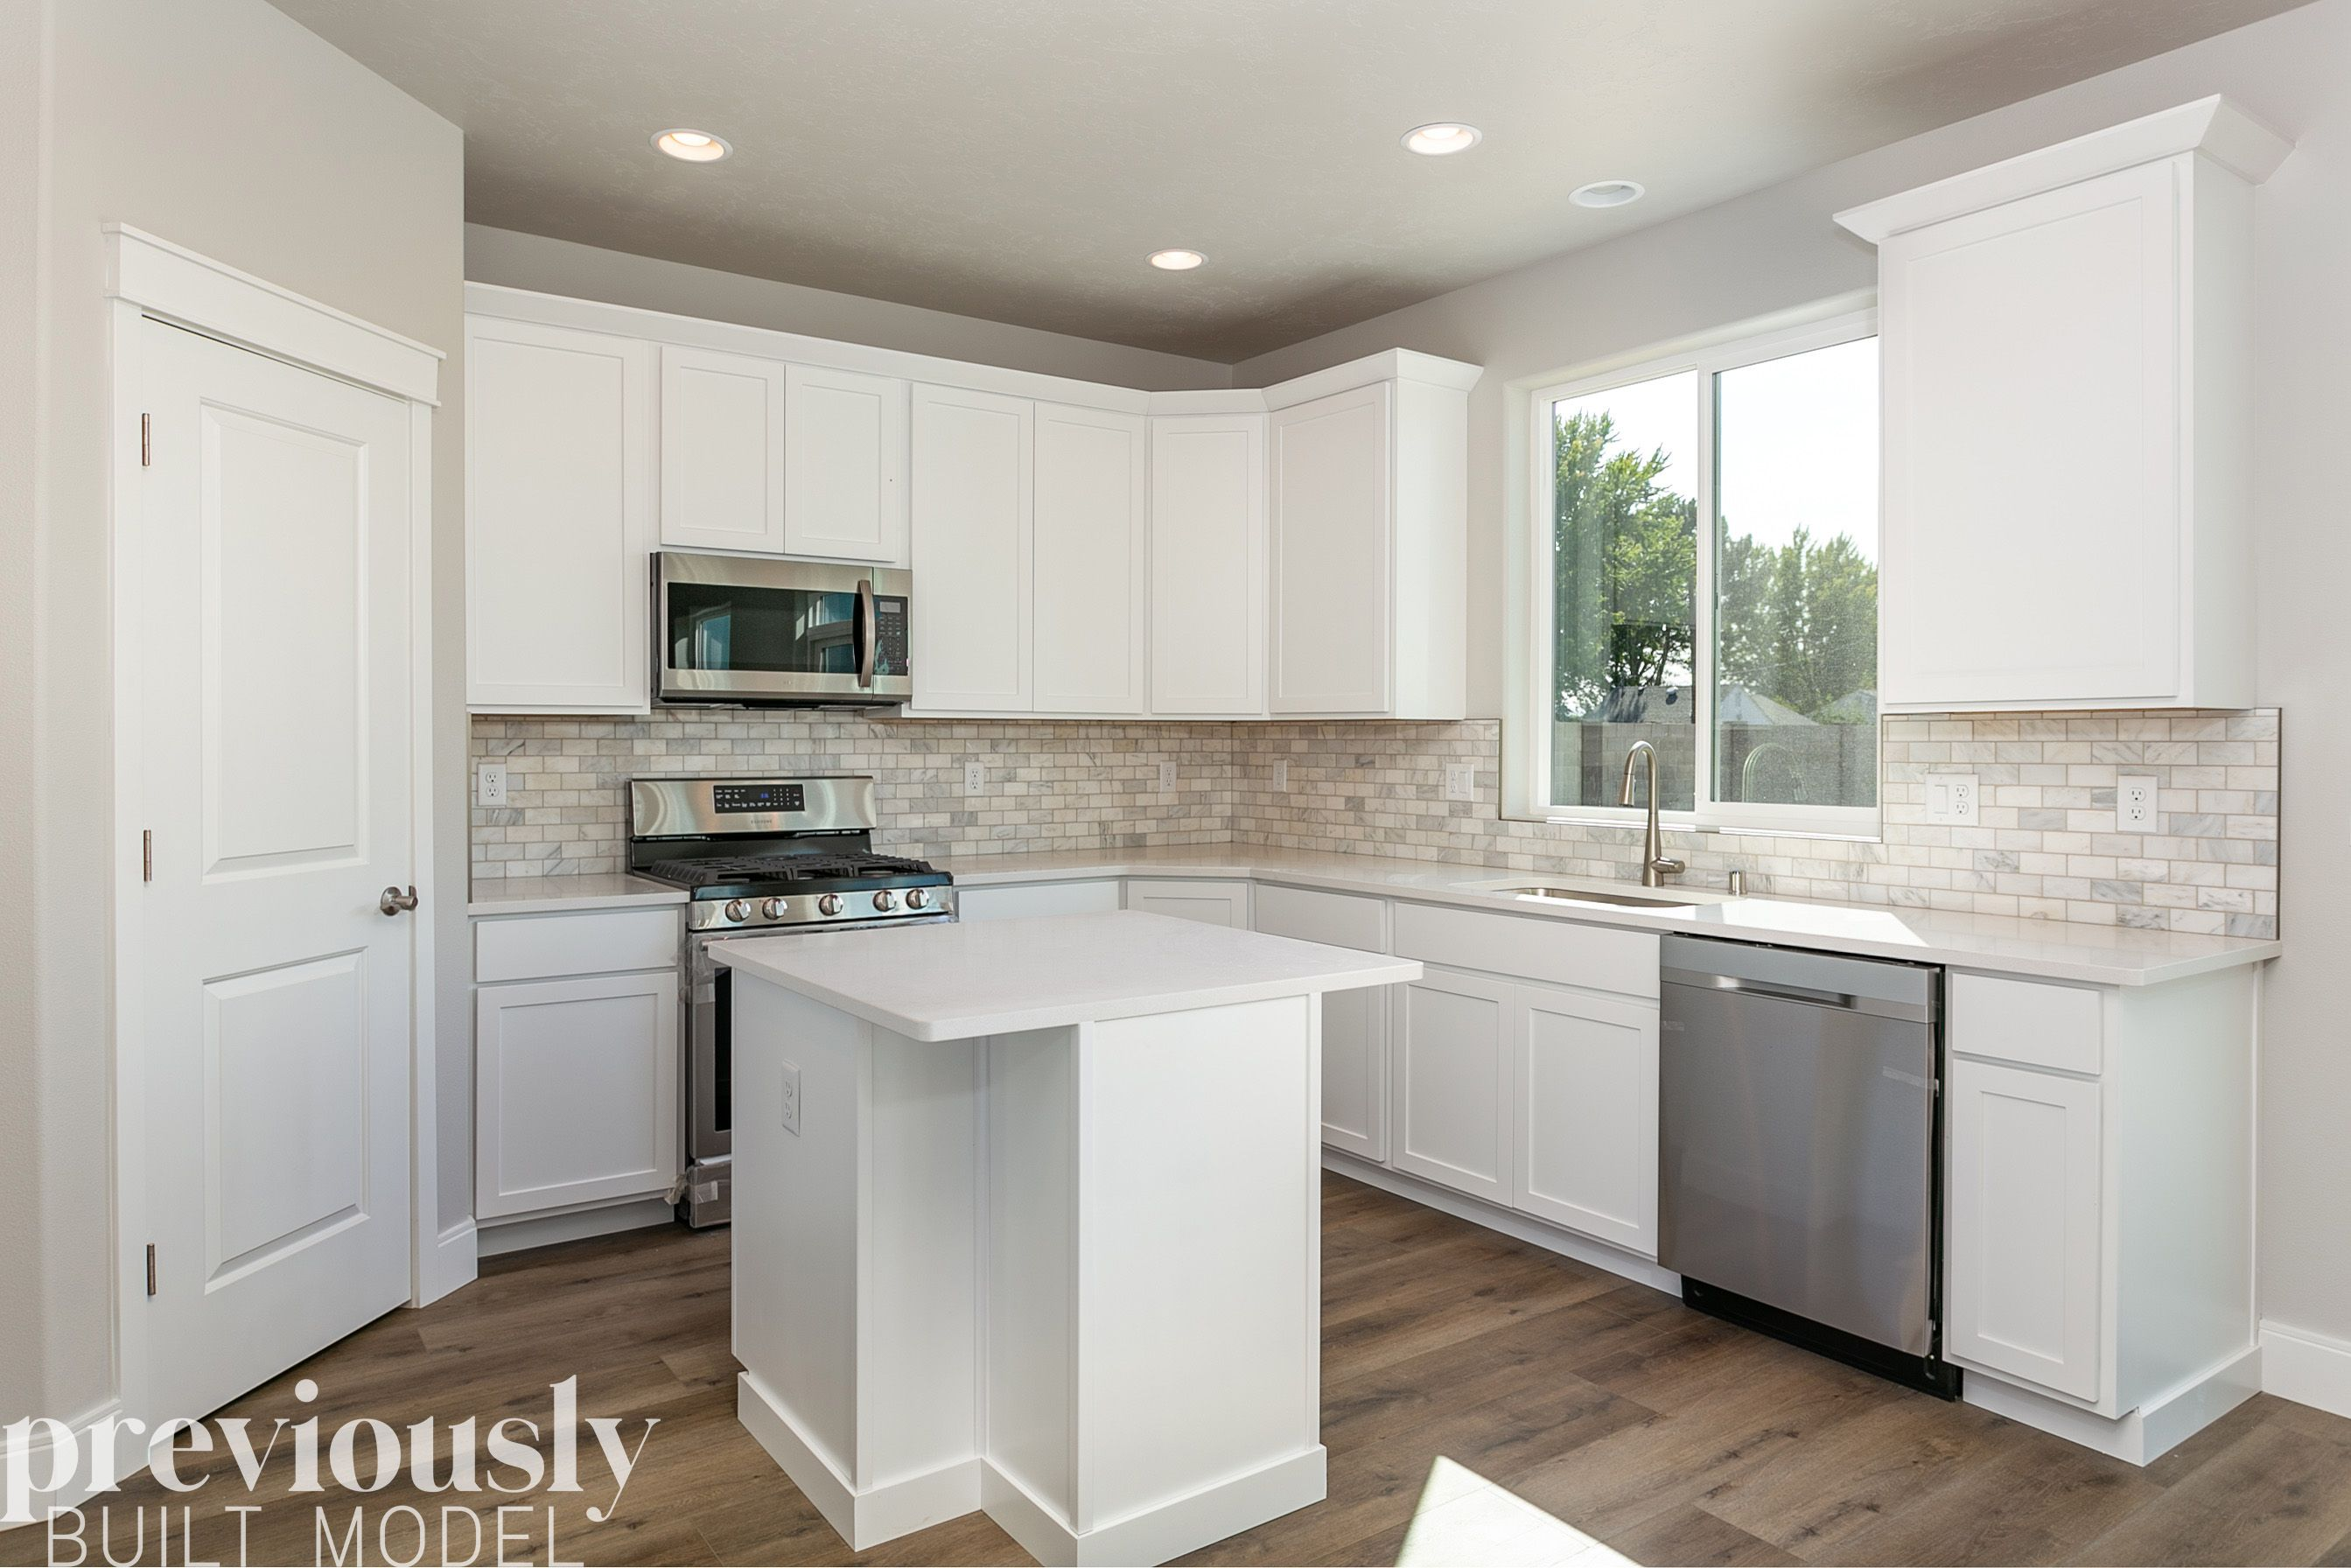 Kitchen featured in The Retreat By RYN Built Homes in Richland, WA